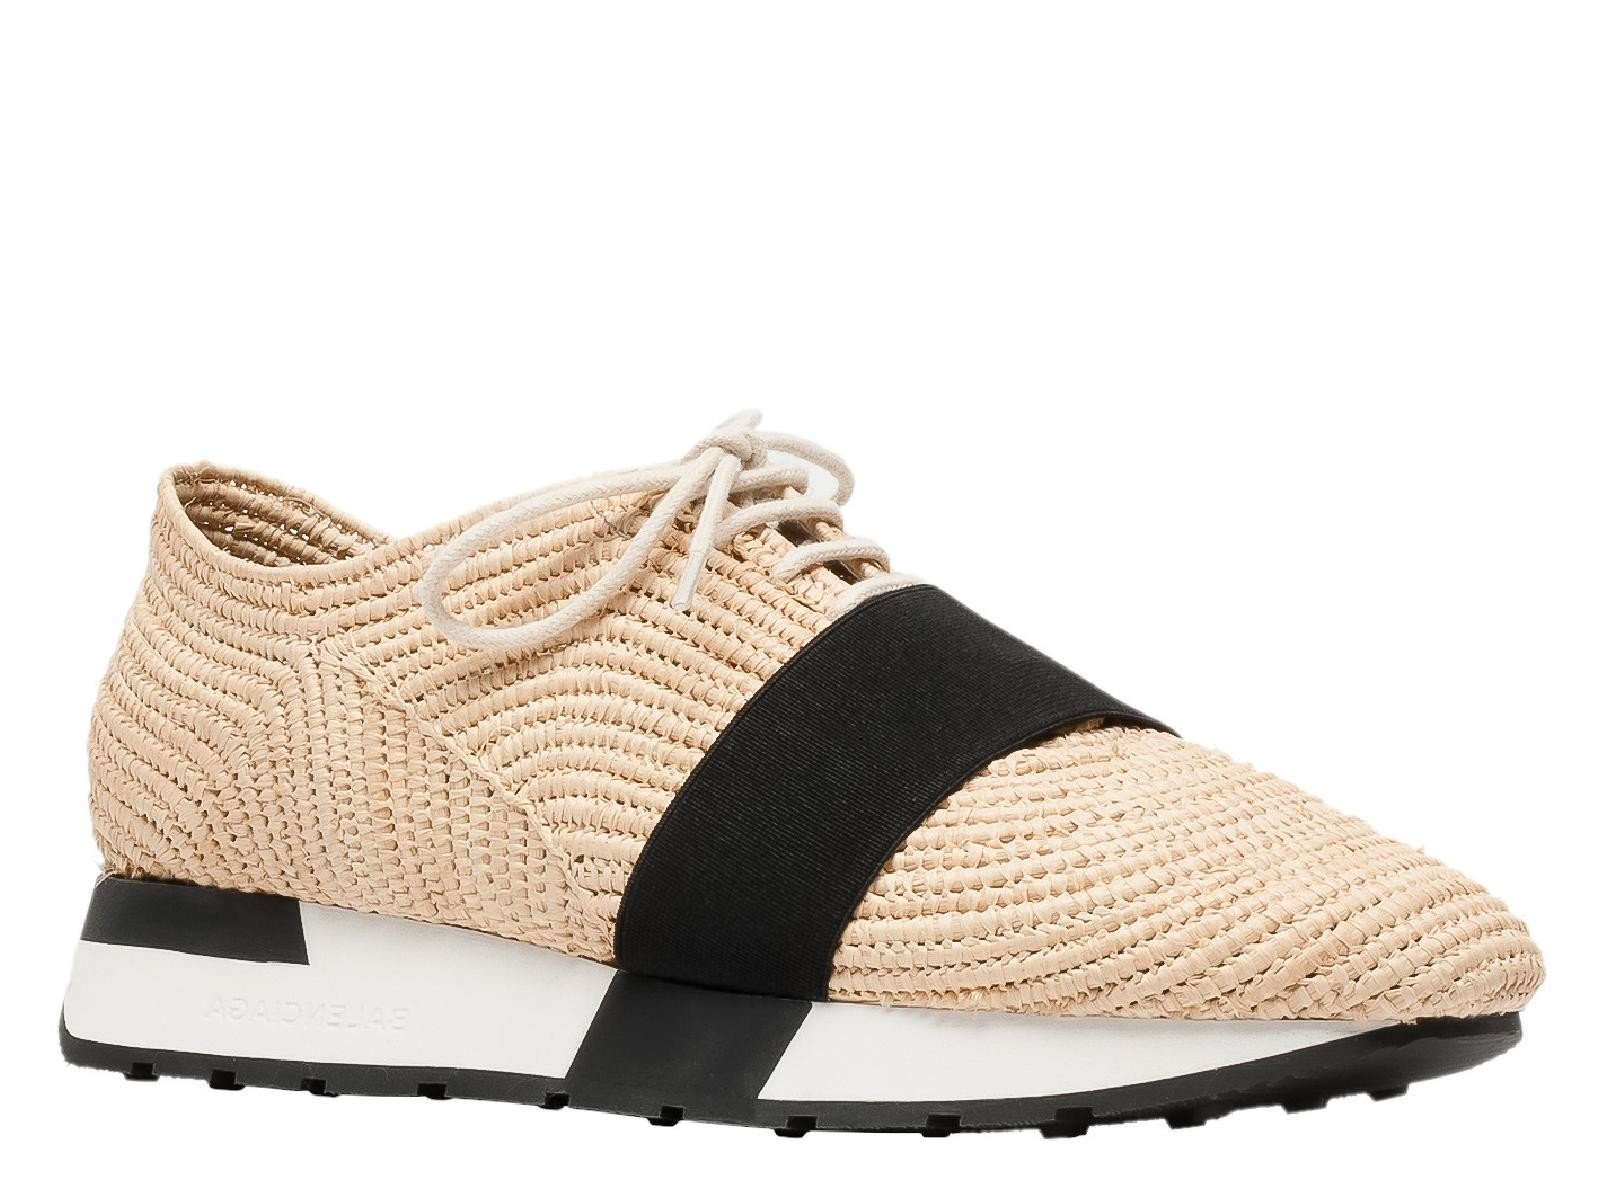 ecba9067289c Balenciaga Women  39 s Beige Straw Sneakers Shoes - Size  10 US -